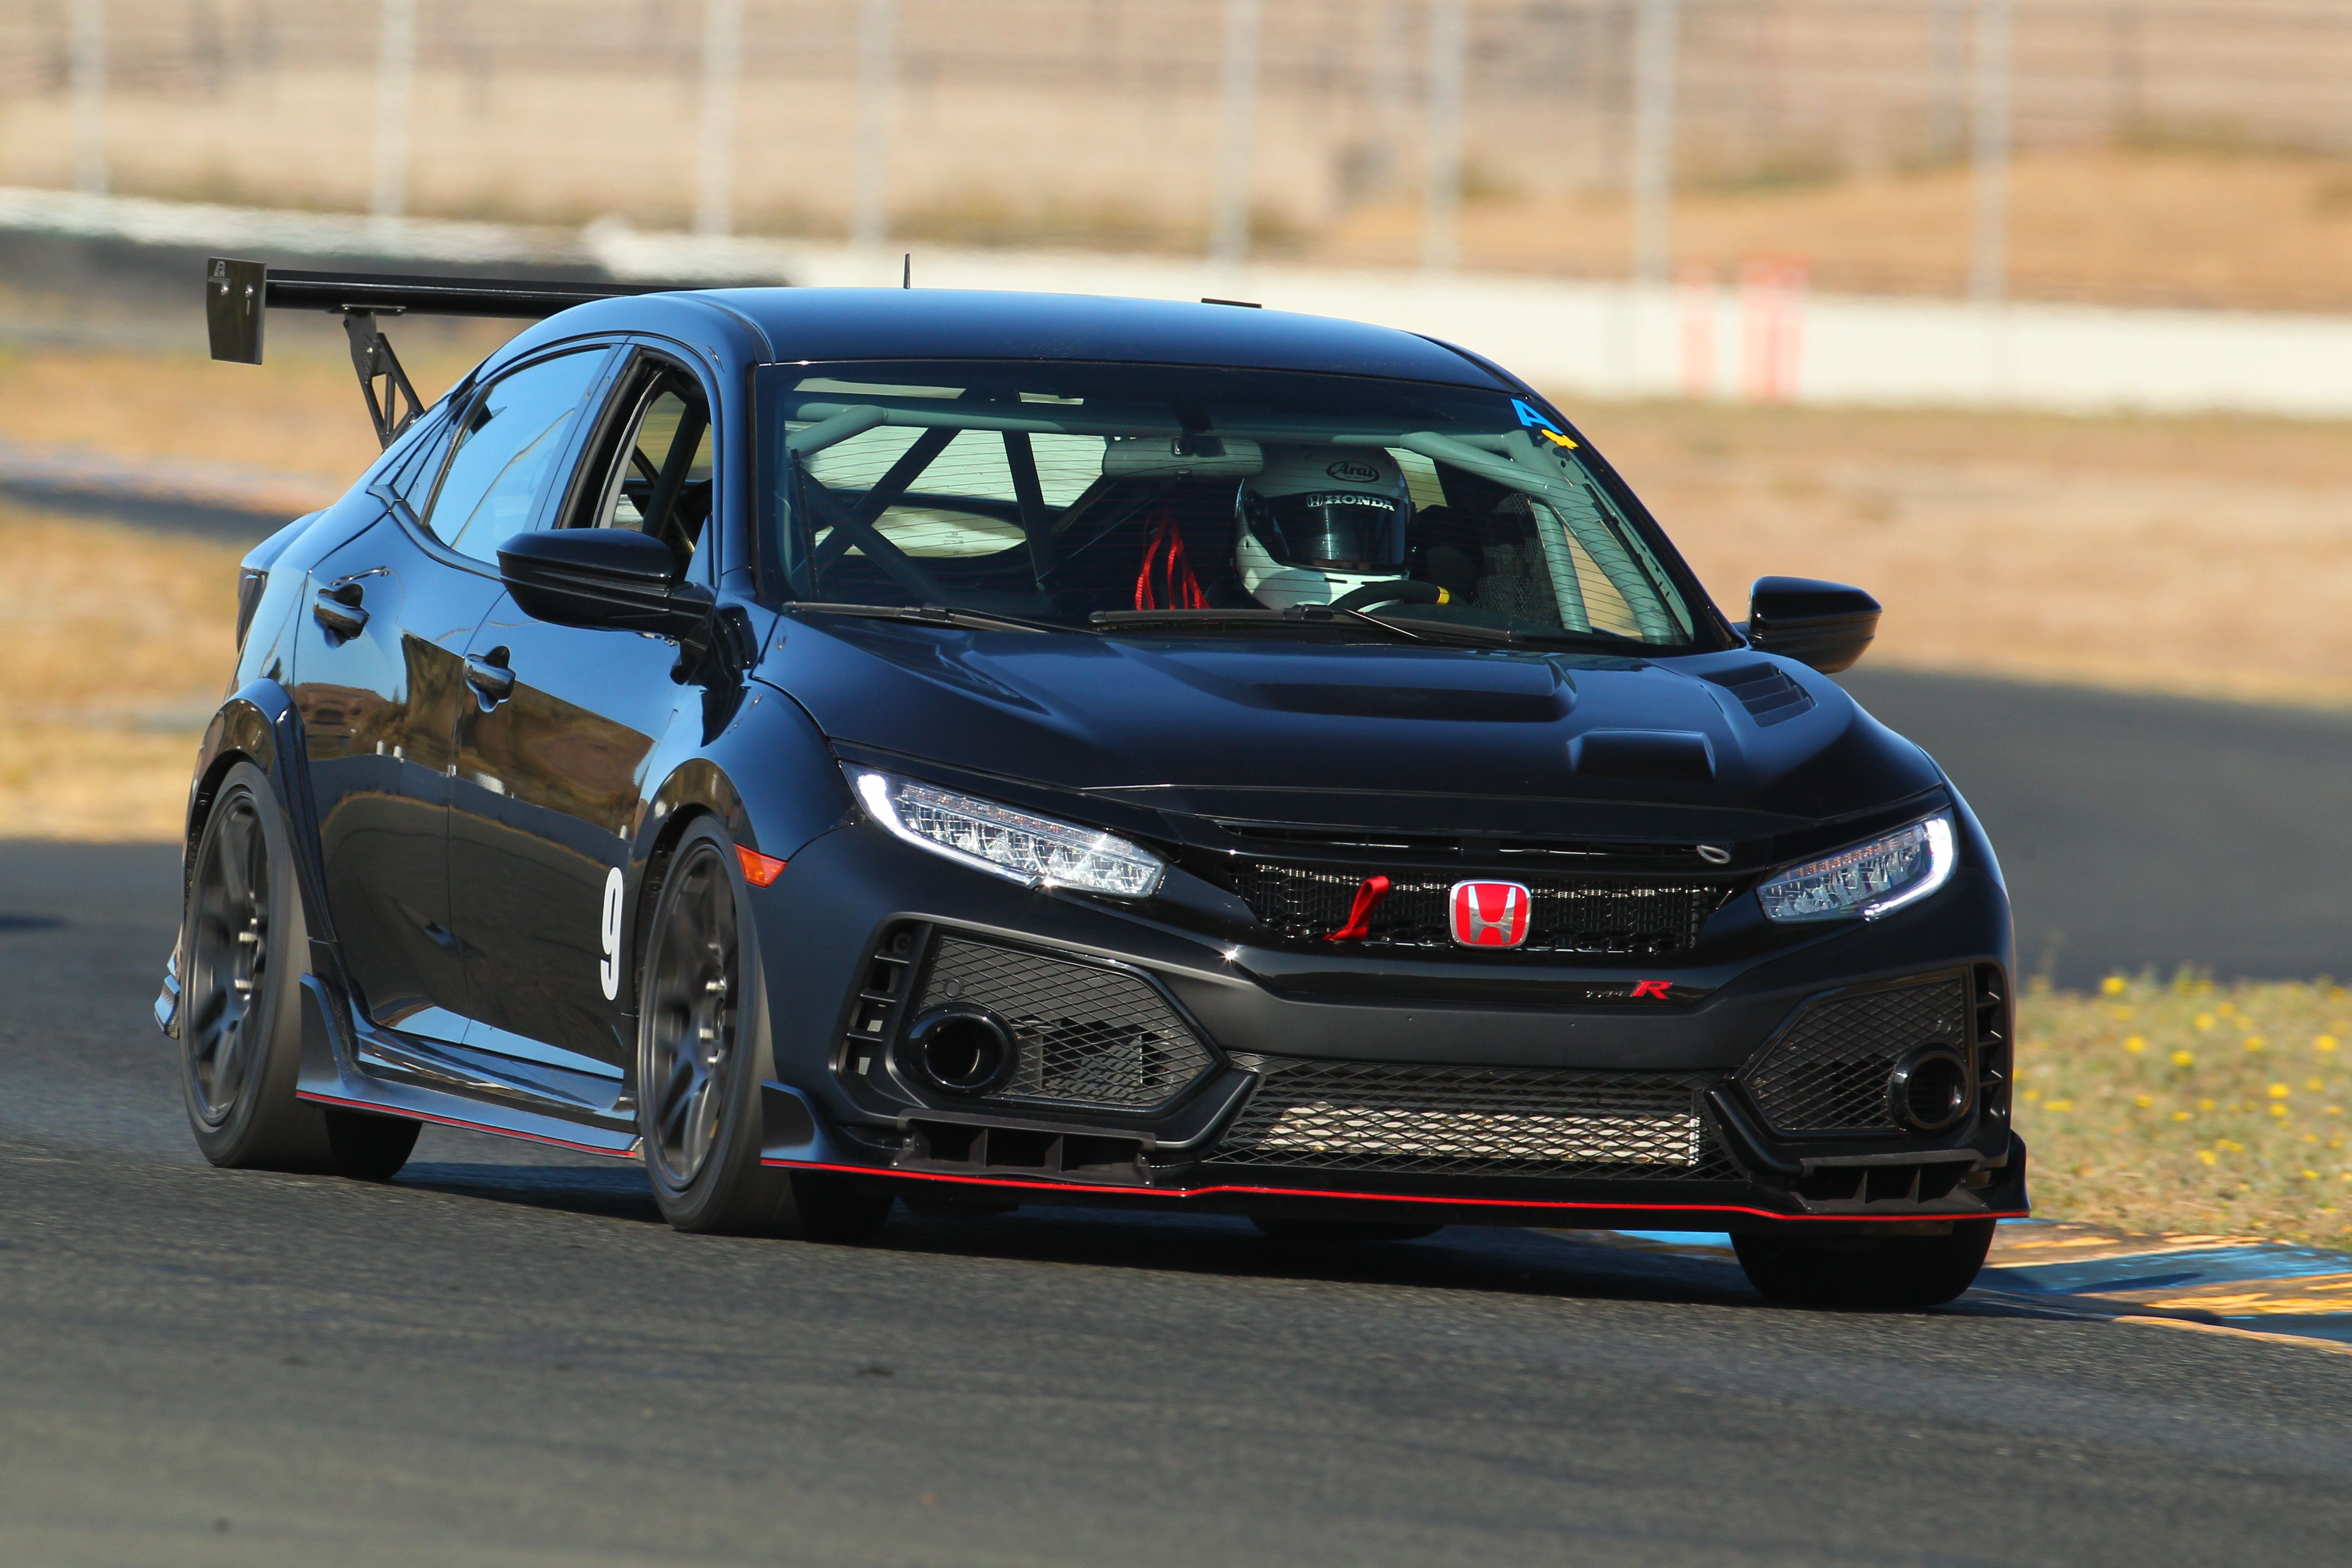 Honda Civic Type R Tc Race Car Costs 90 000 From Factory